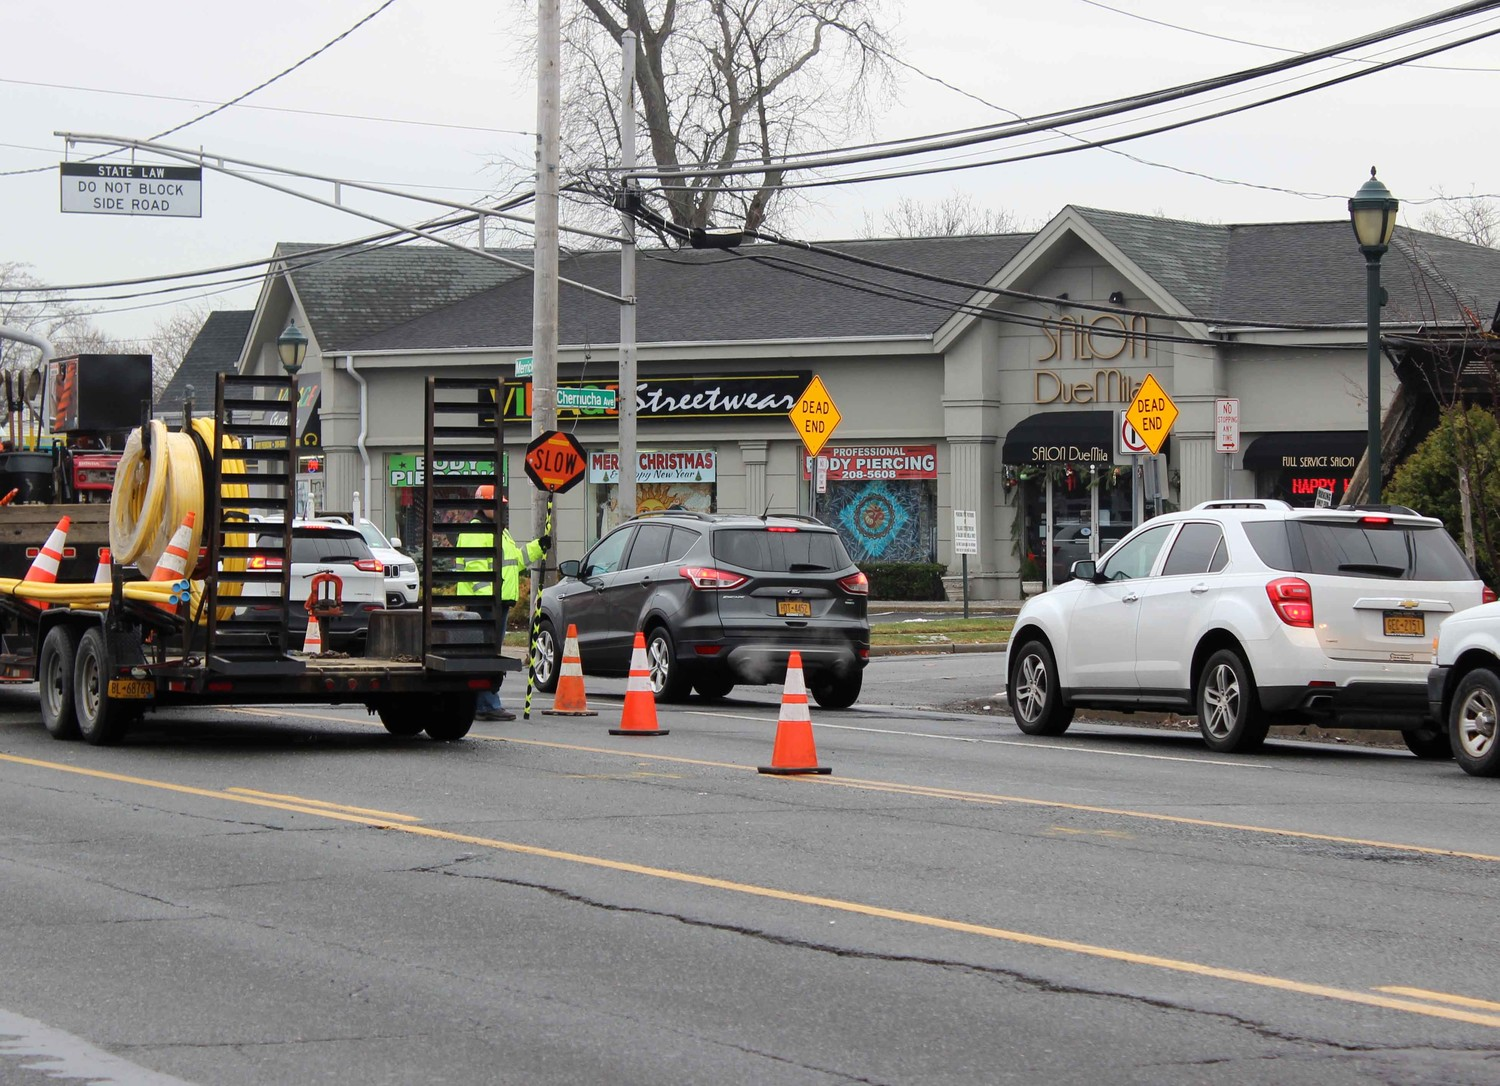 Local business owners said that a National Grid construction project on Merrick Road has hindered their holiday rush.